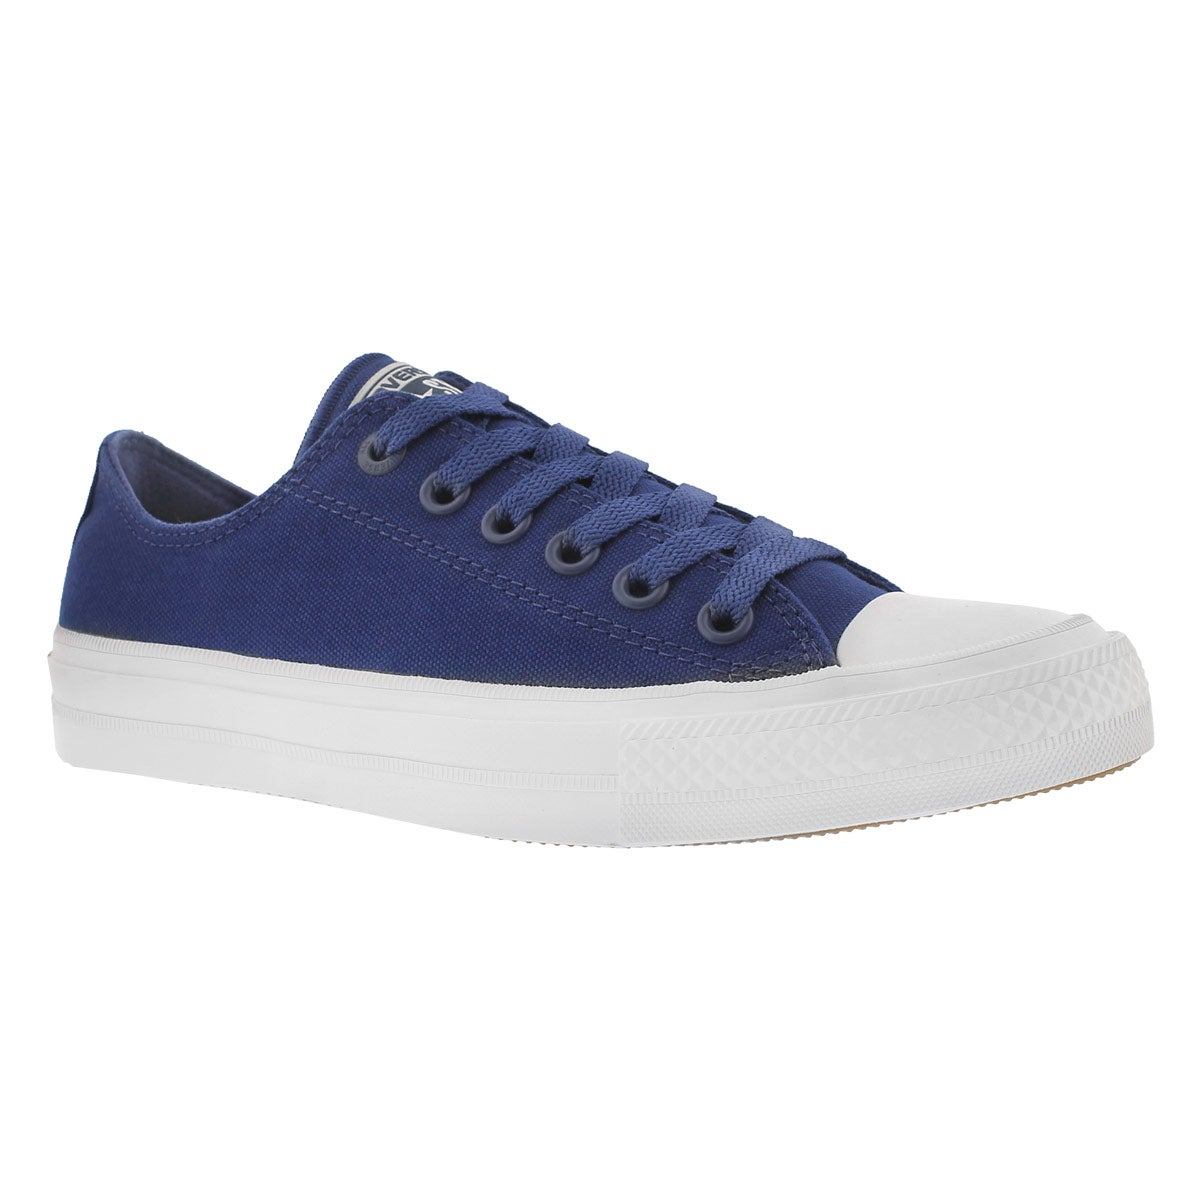 Women's CHUCK II VIZ FLOW bluebell sneakers